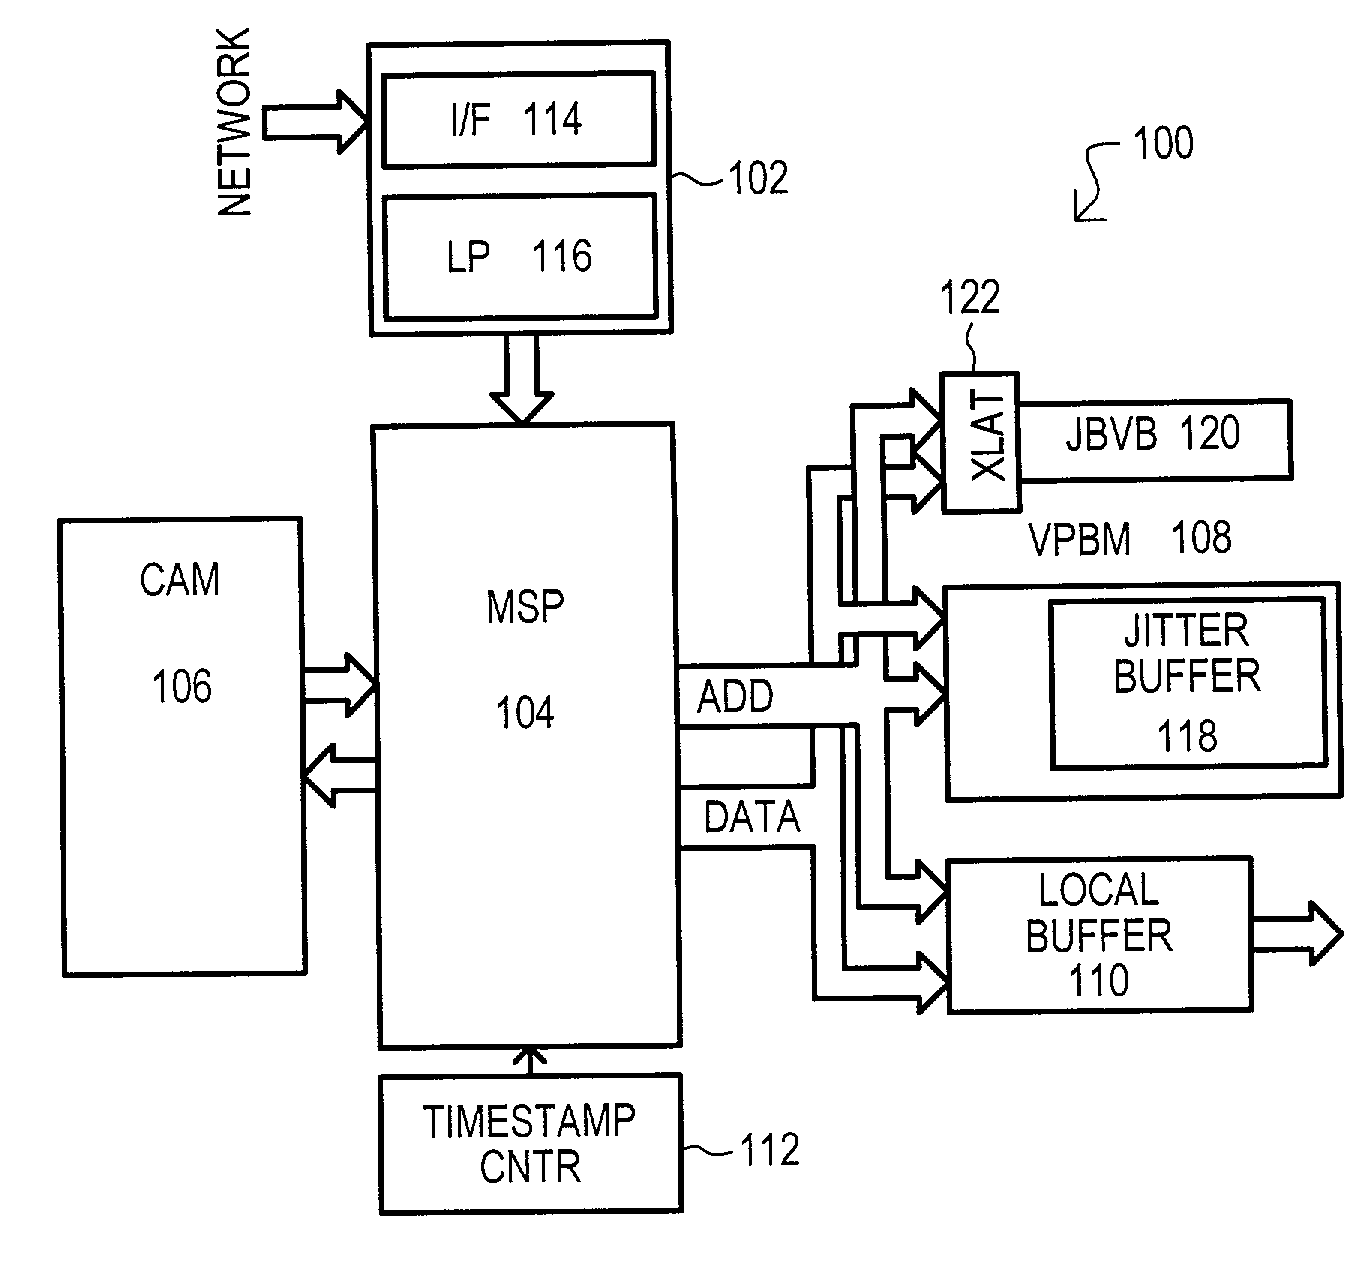 Patent US6977948 - Jitter buffer state management system for